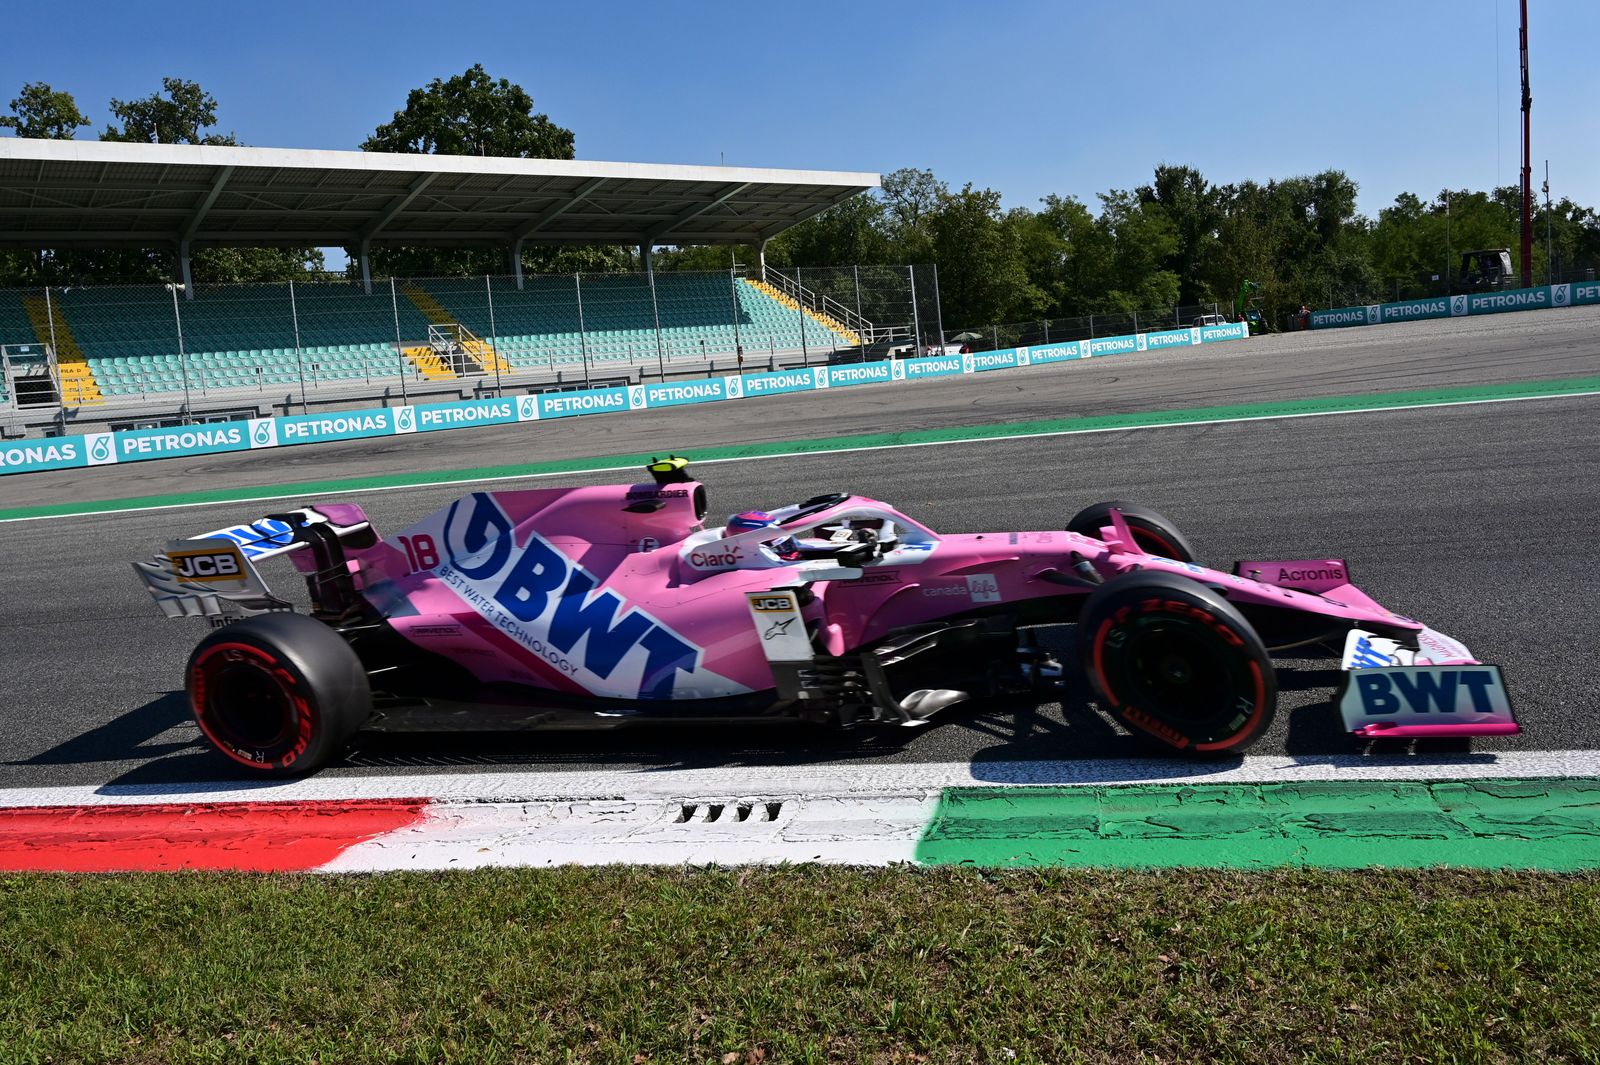 Formula One Grand Prix of Italy, Monza - 05 Sep 2020